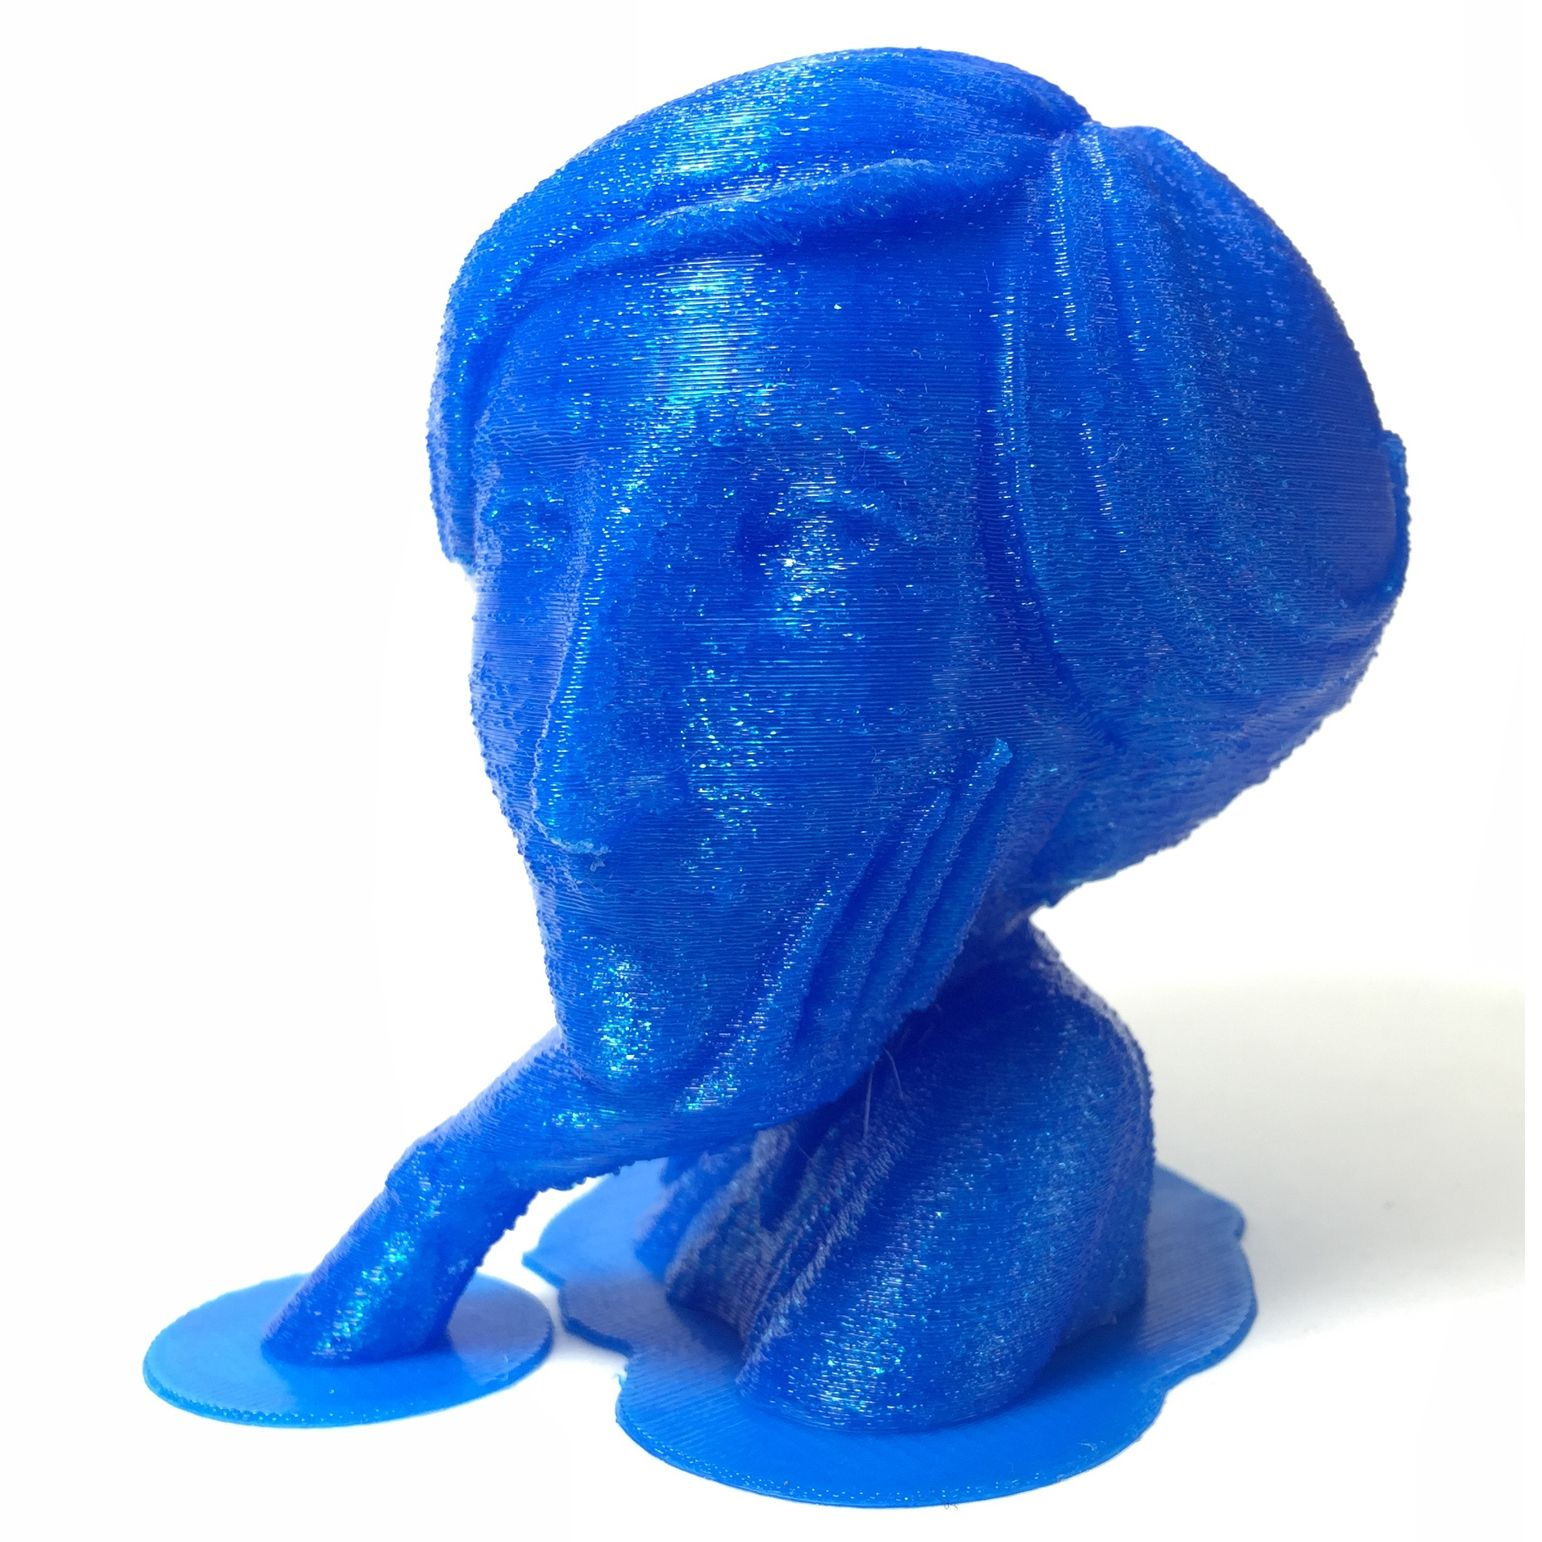 The Thoughtful Professor by Ola Sundberg  #3dprinting #3dprinted #sculptures